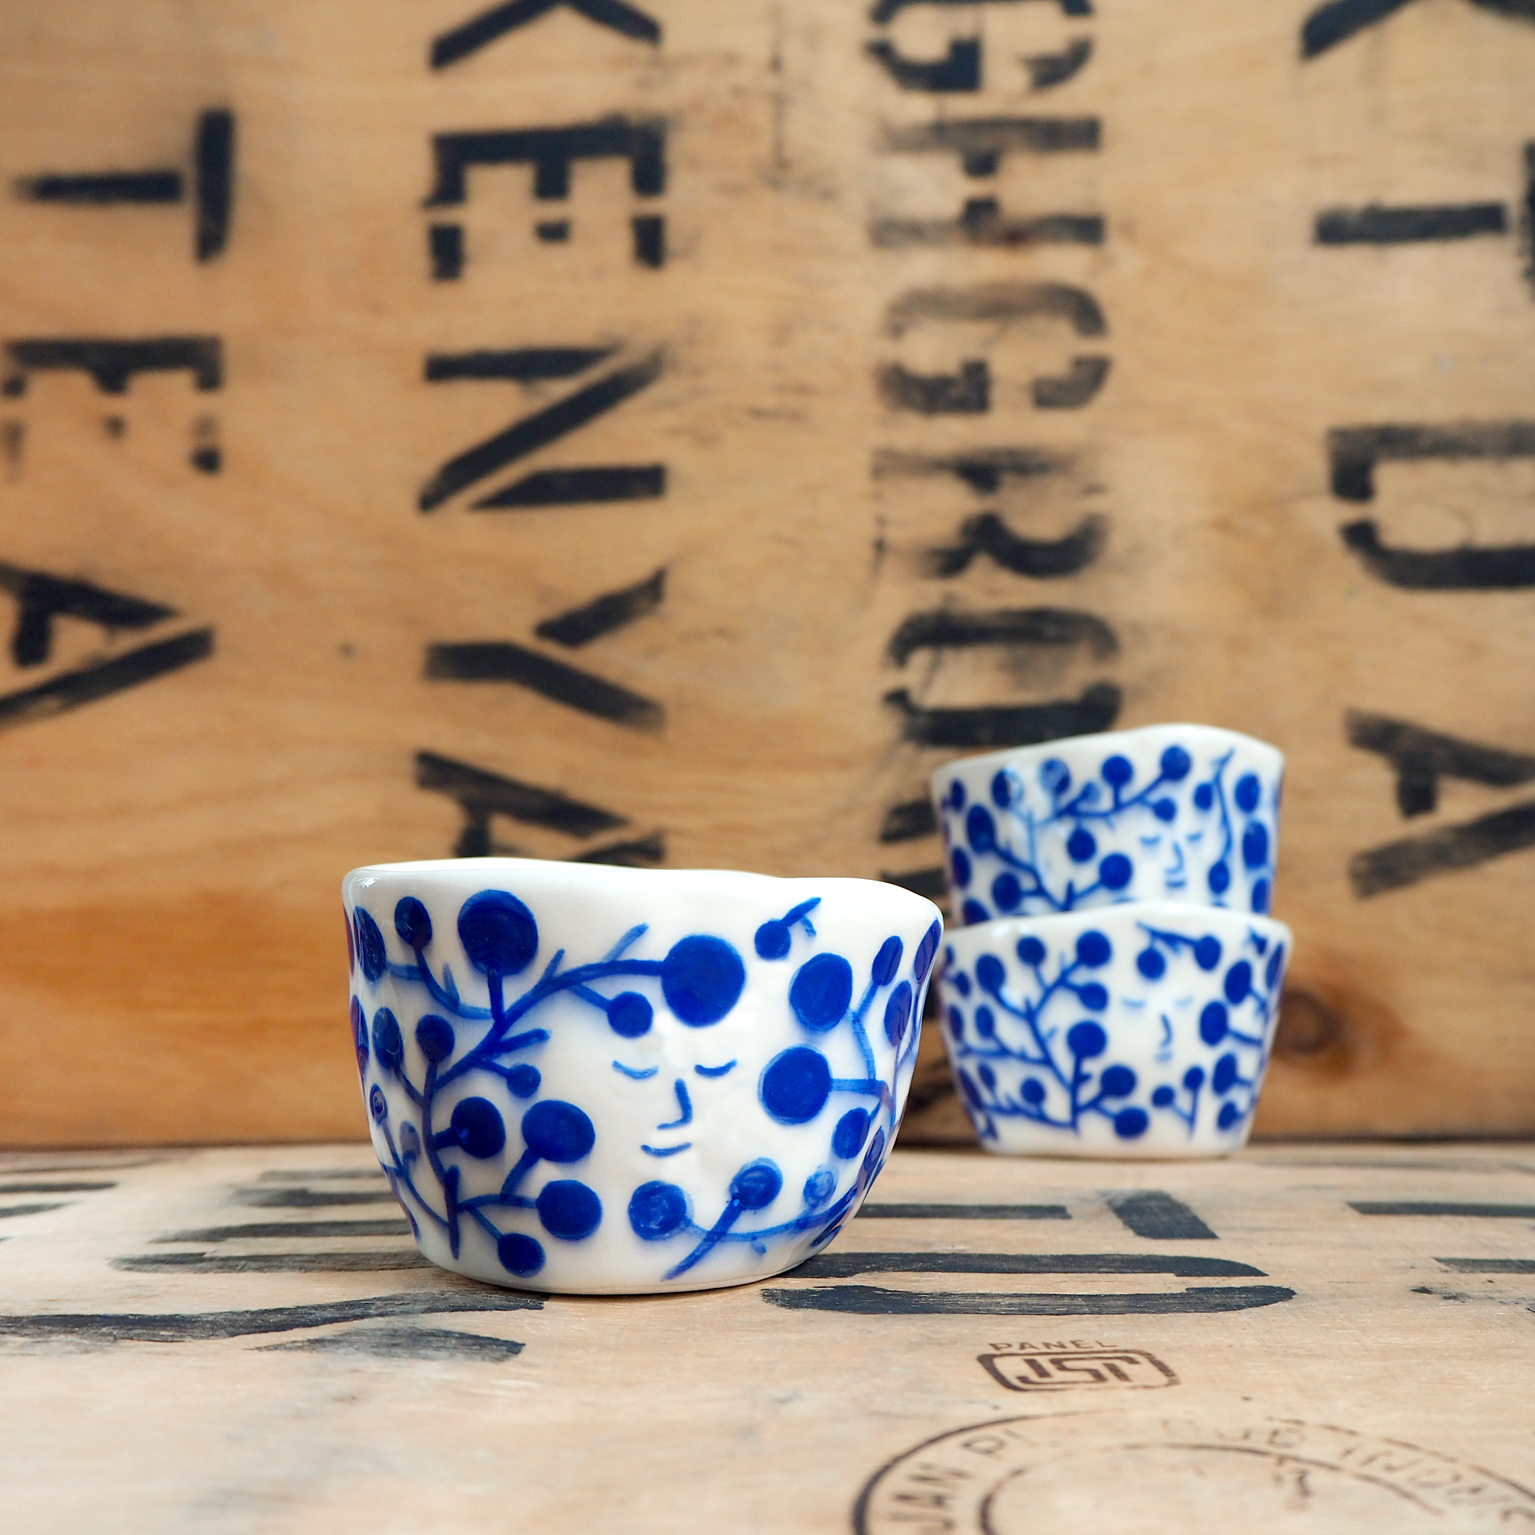 Blue Flower Cup By Scotty Gillespie